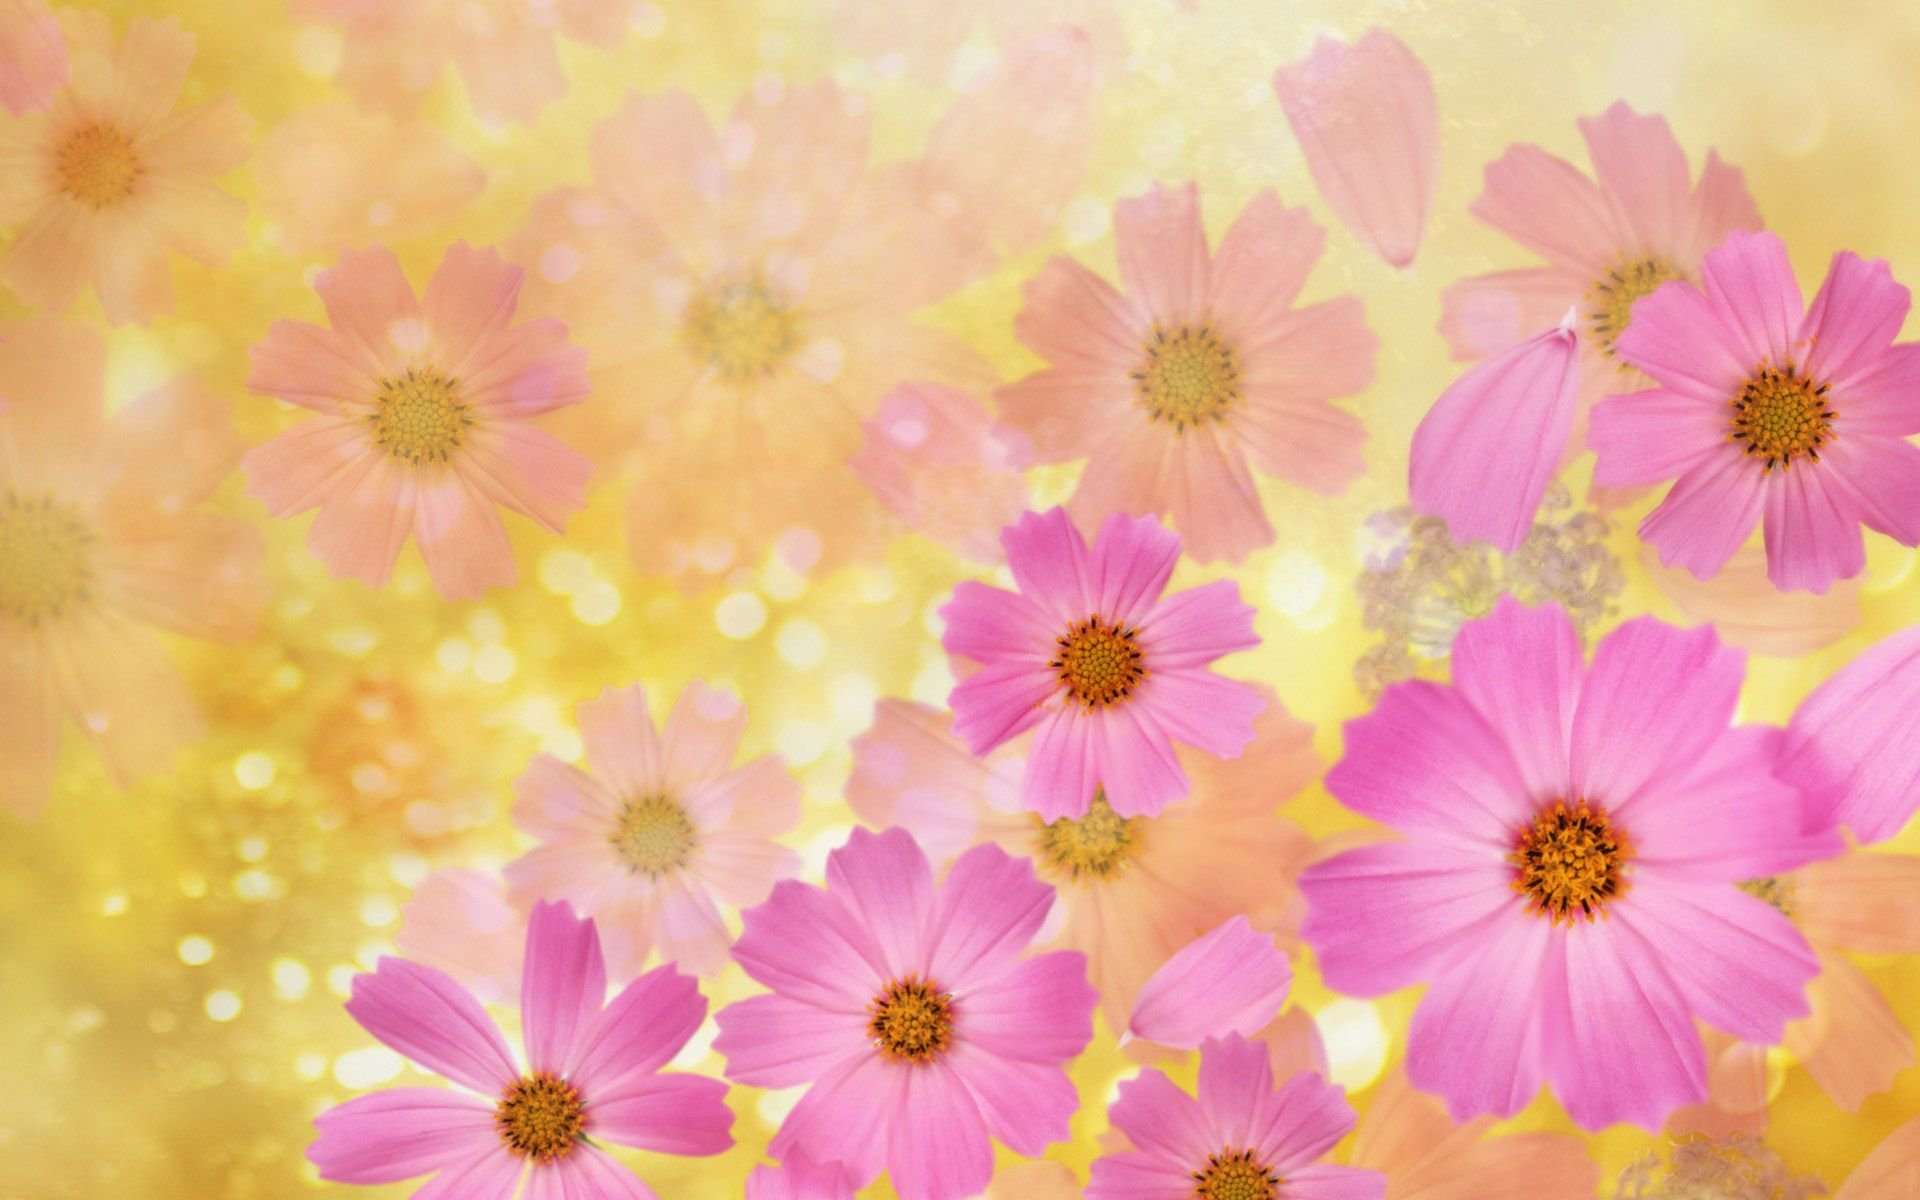 8128 Beautiful Spring Flowers Jpg 1920 1200 Flower Backgrounds Spring Flowers Background Pink Flowers Background